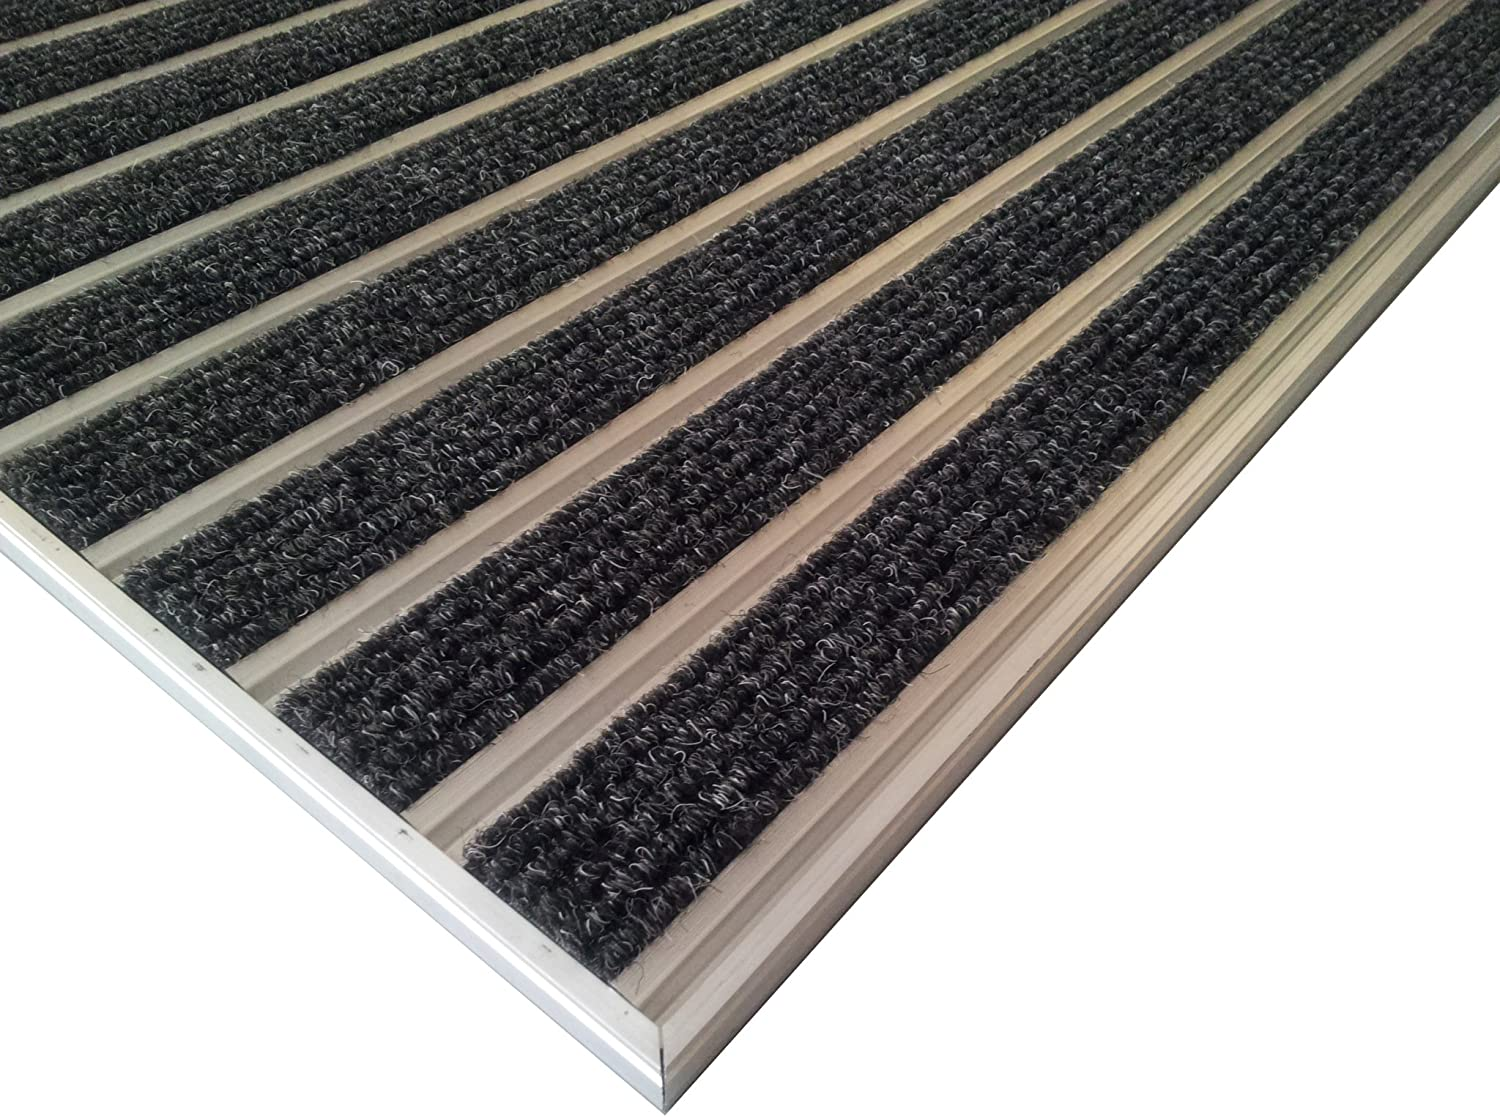 for recessed installation in mat well,including matwell frame Professional aluminium entrance matting system HD60 Carpet size 110 x 68 cm Anthracite color.